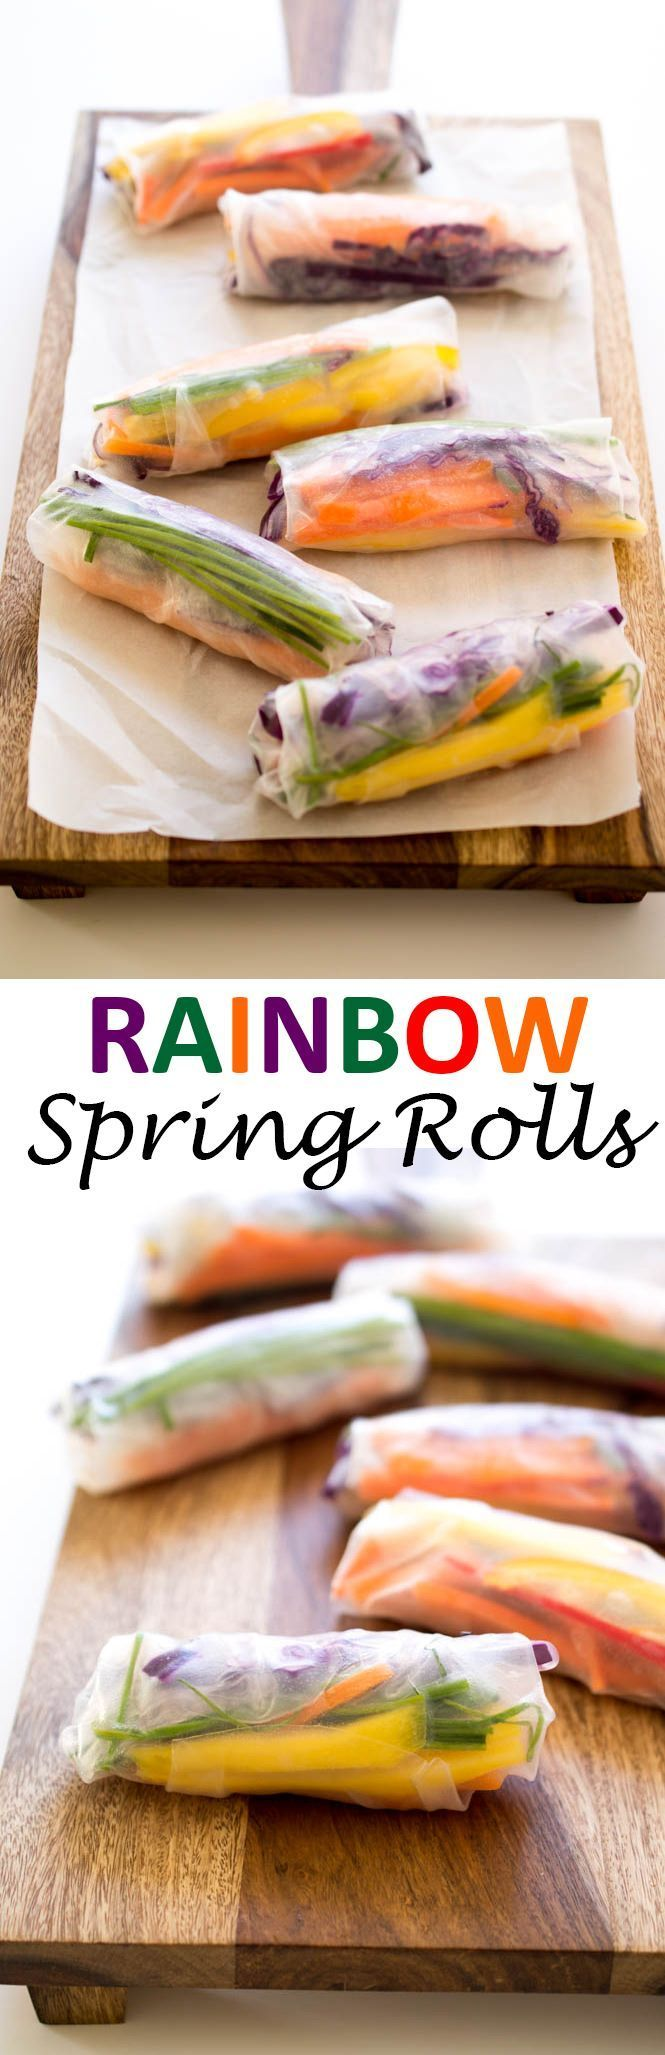 20 Minute Rainbow Vegetable Spring Rolls. Colorful and full of flavor. Served…                                                                                                                                                                                 More